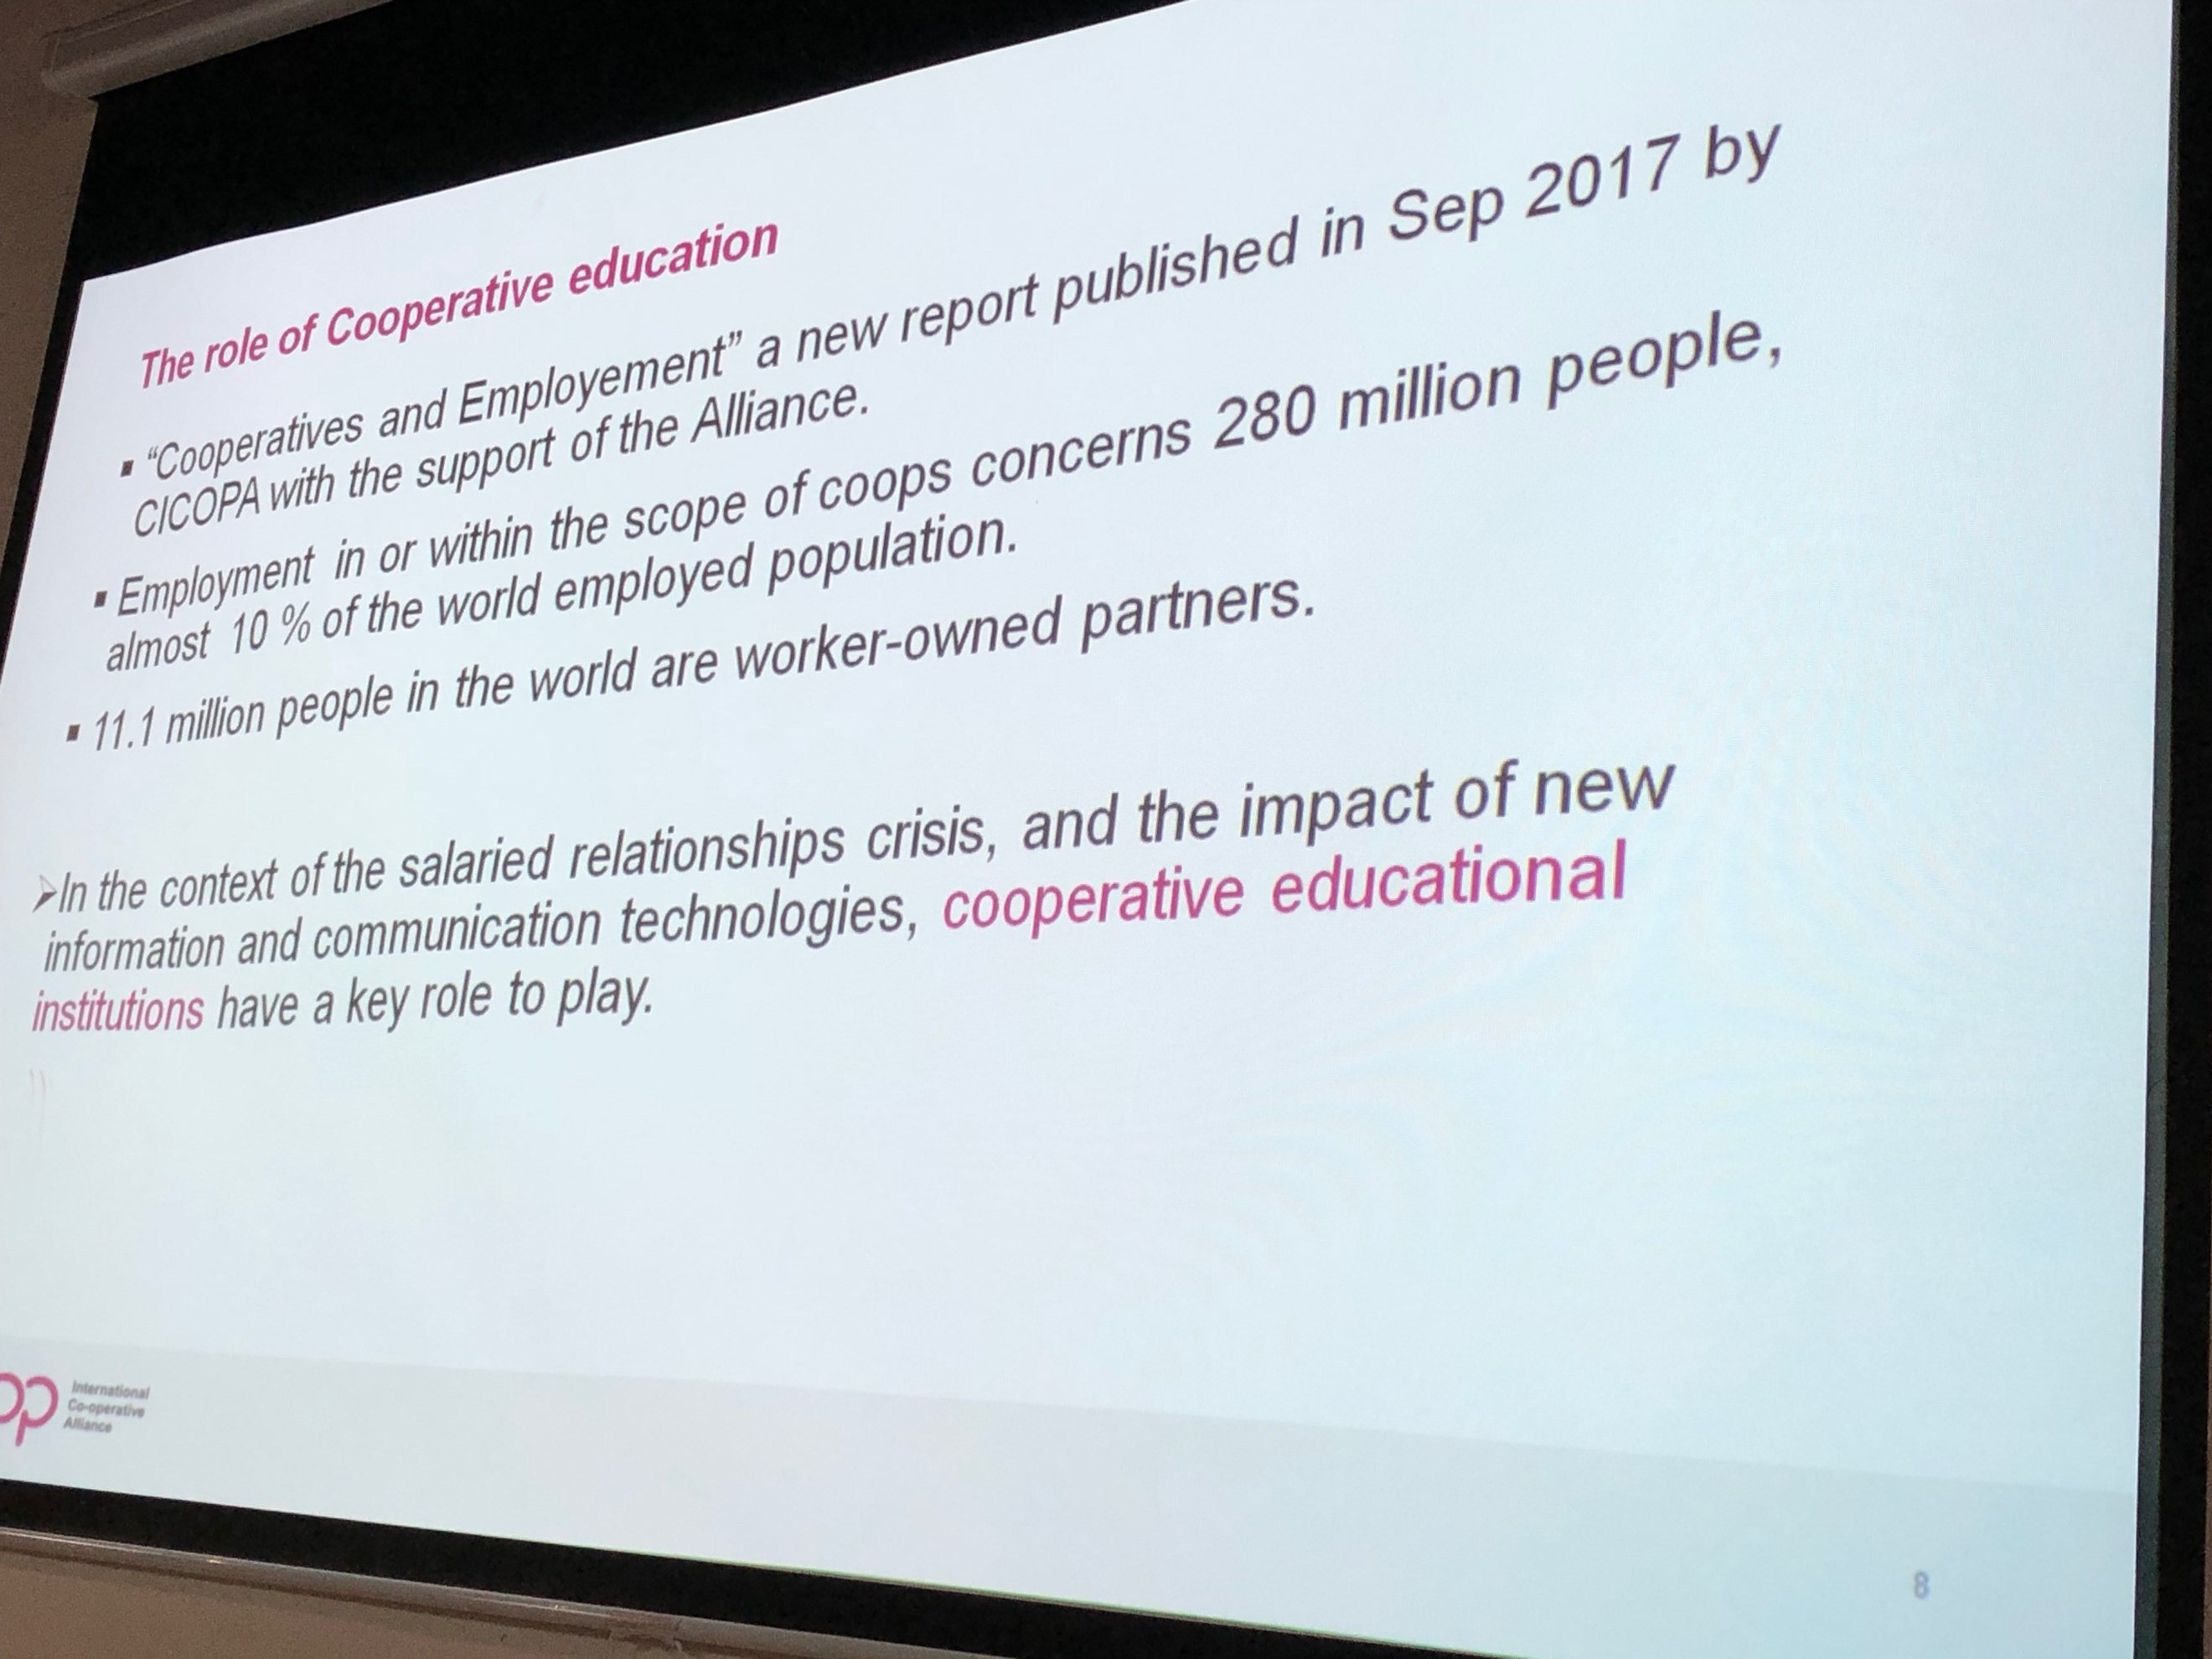 A slide about the role of co-operative education